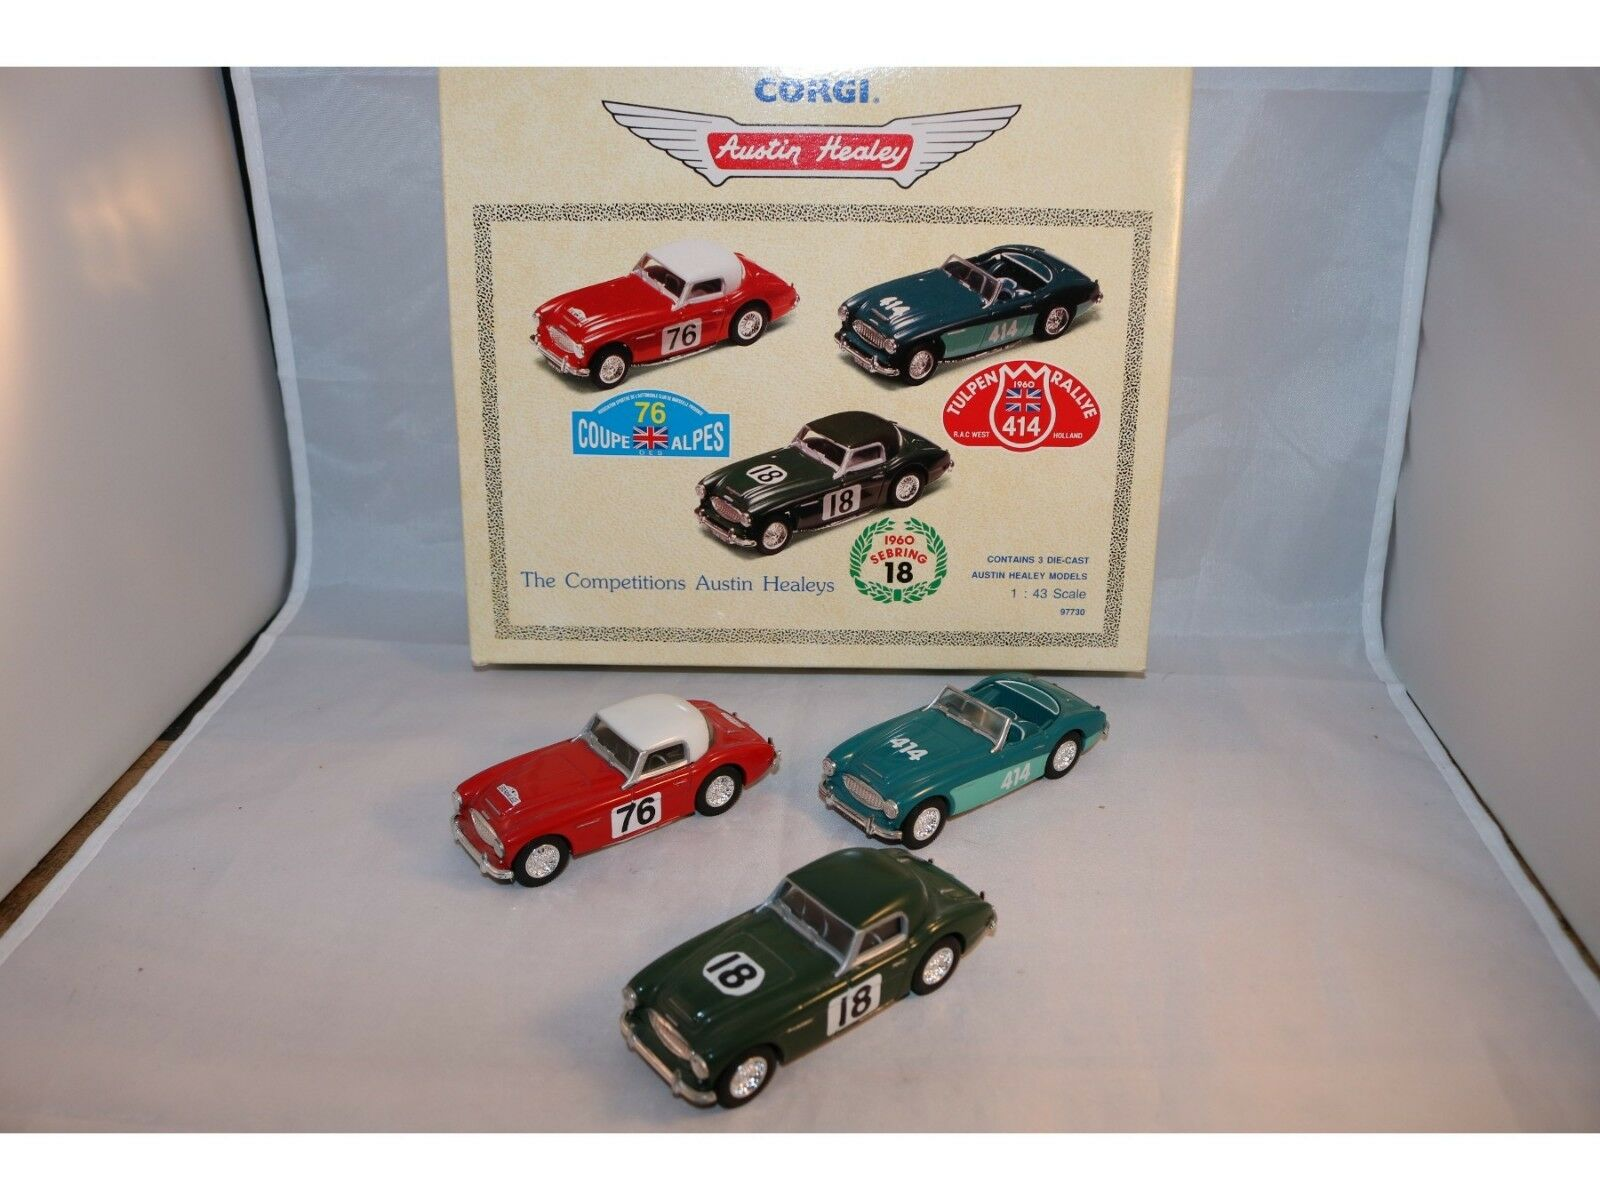 Corgi Toys 97730 The competitions Austin Healeys Gift Set in mint condition